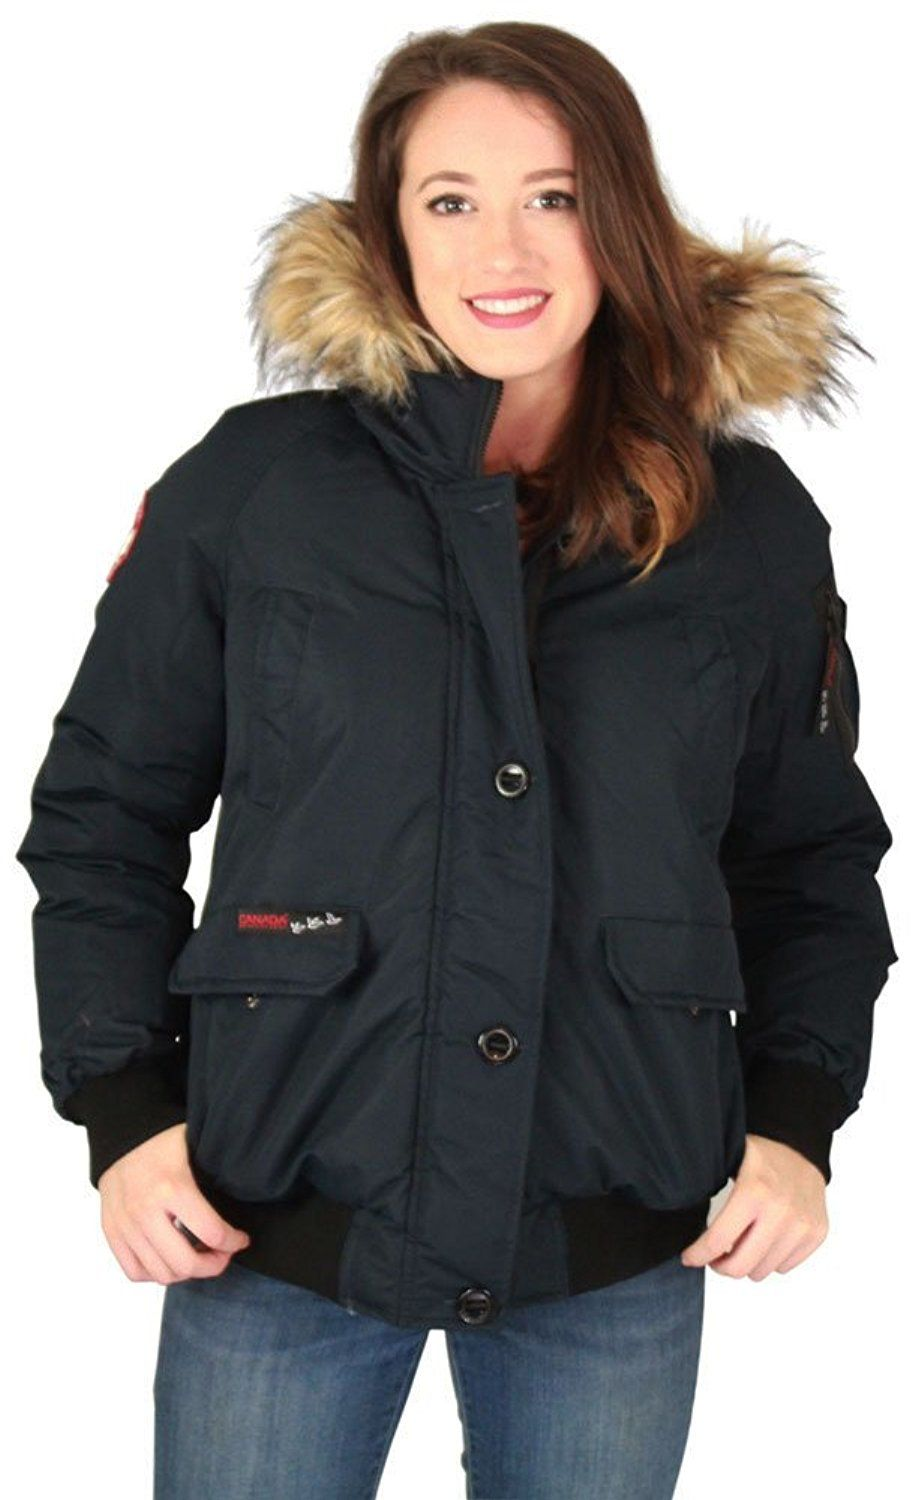 342a52b0ae9 Canada Weather Gear Womens Faux Goose Bomber Jacket Coat Blk Size 1XL    Remarkable product available now.   Plus size coats